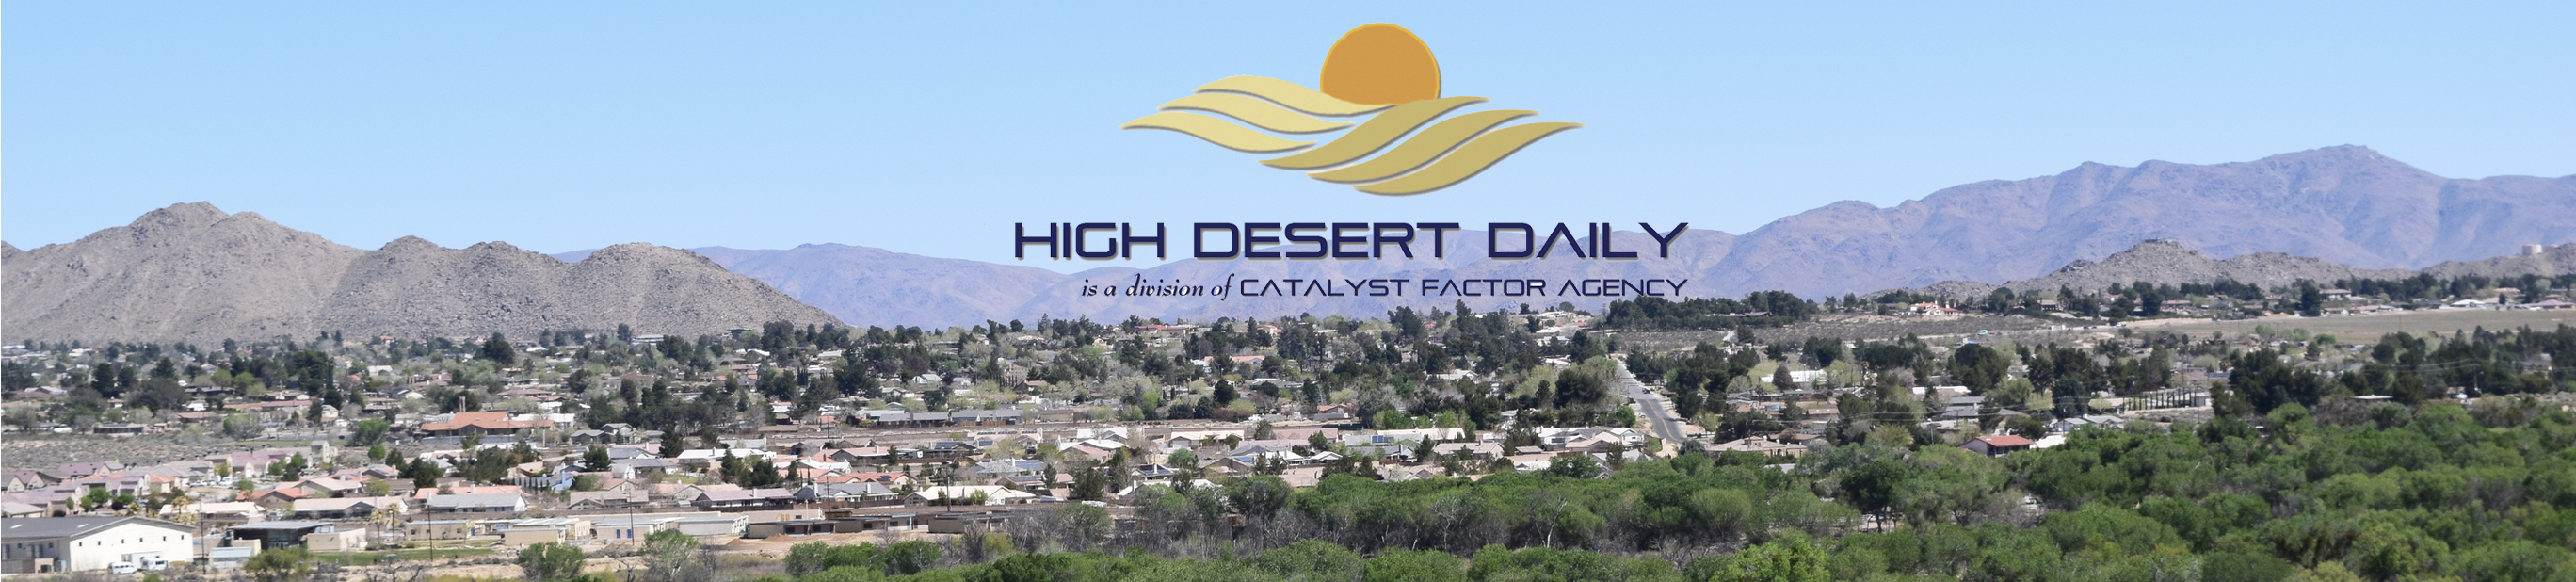 High Desert Daily